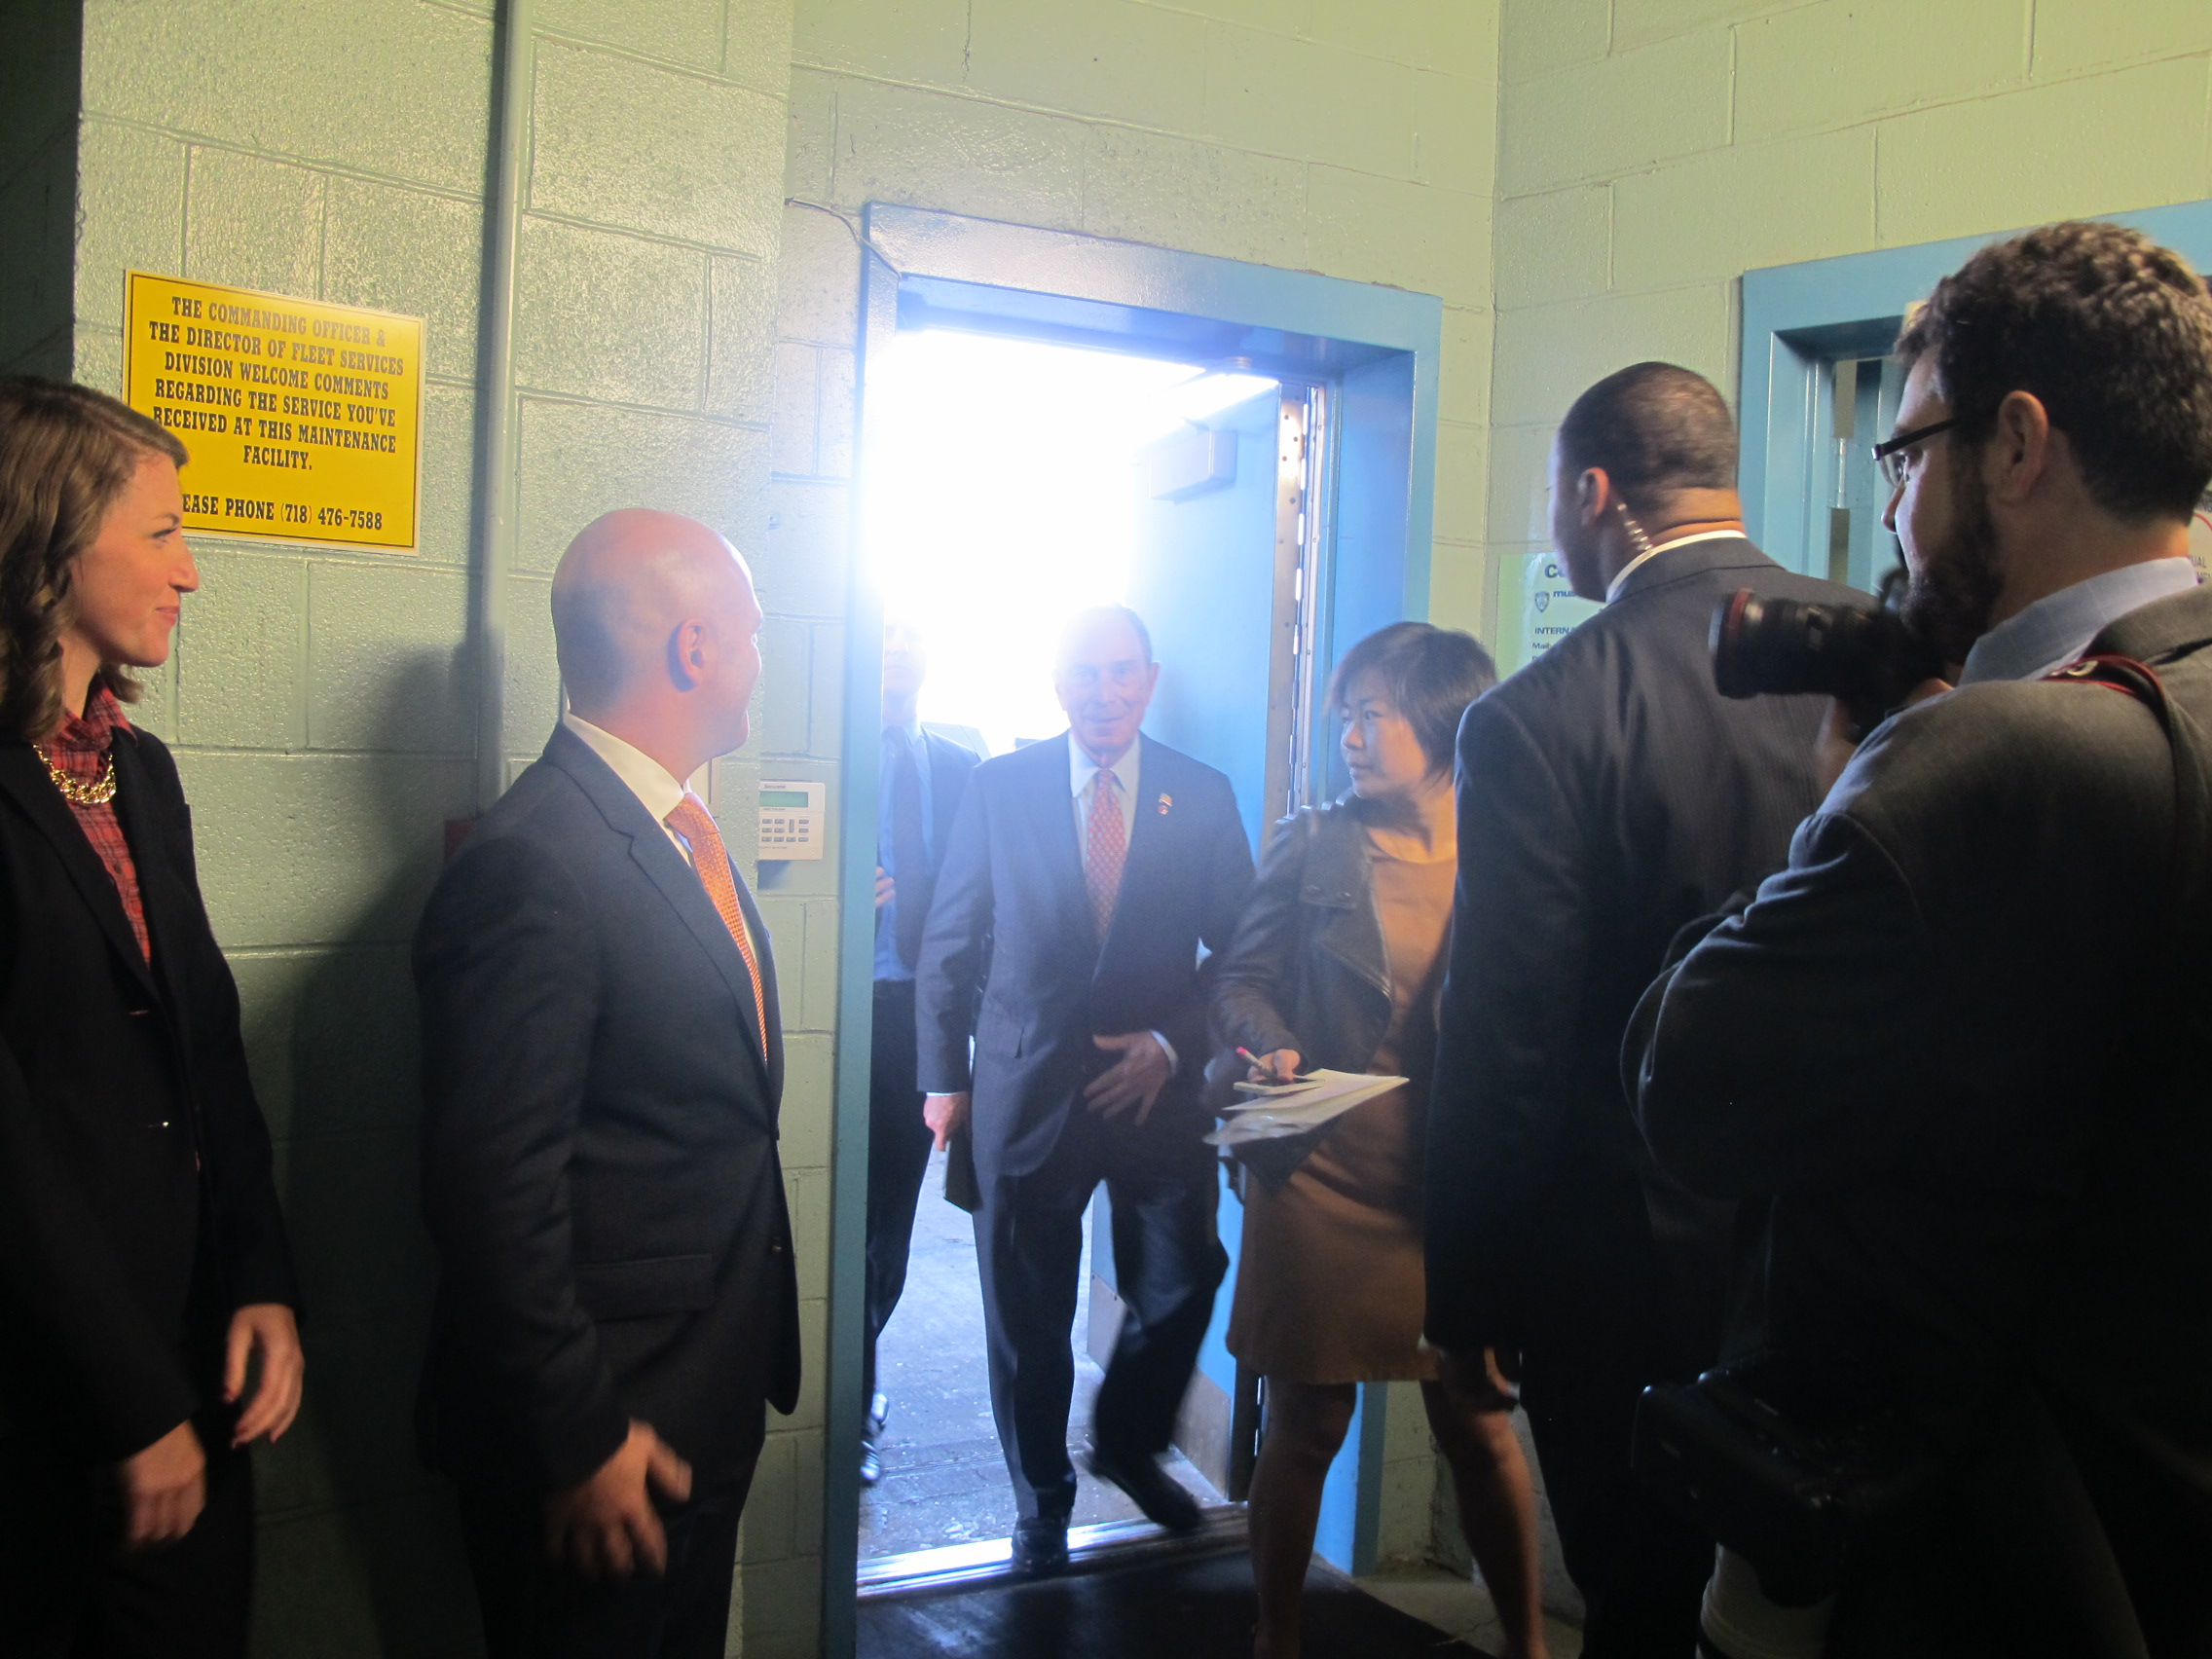 At a high profile event in New York City, where my project launch was marked by a press release by Mayor Bloomberg.  I'm standing to the left waiting to meet him in a police holding cell.